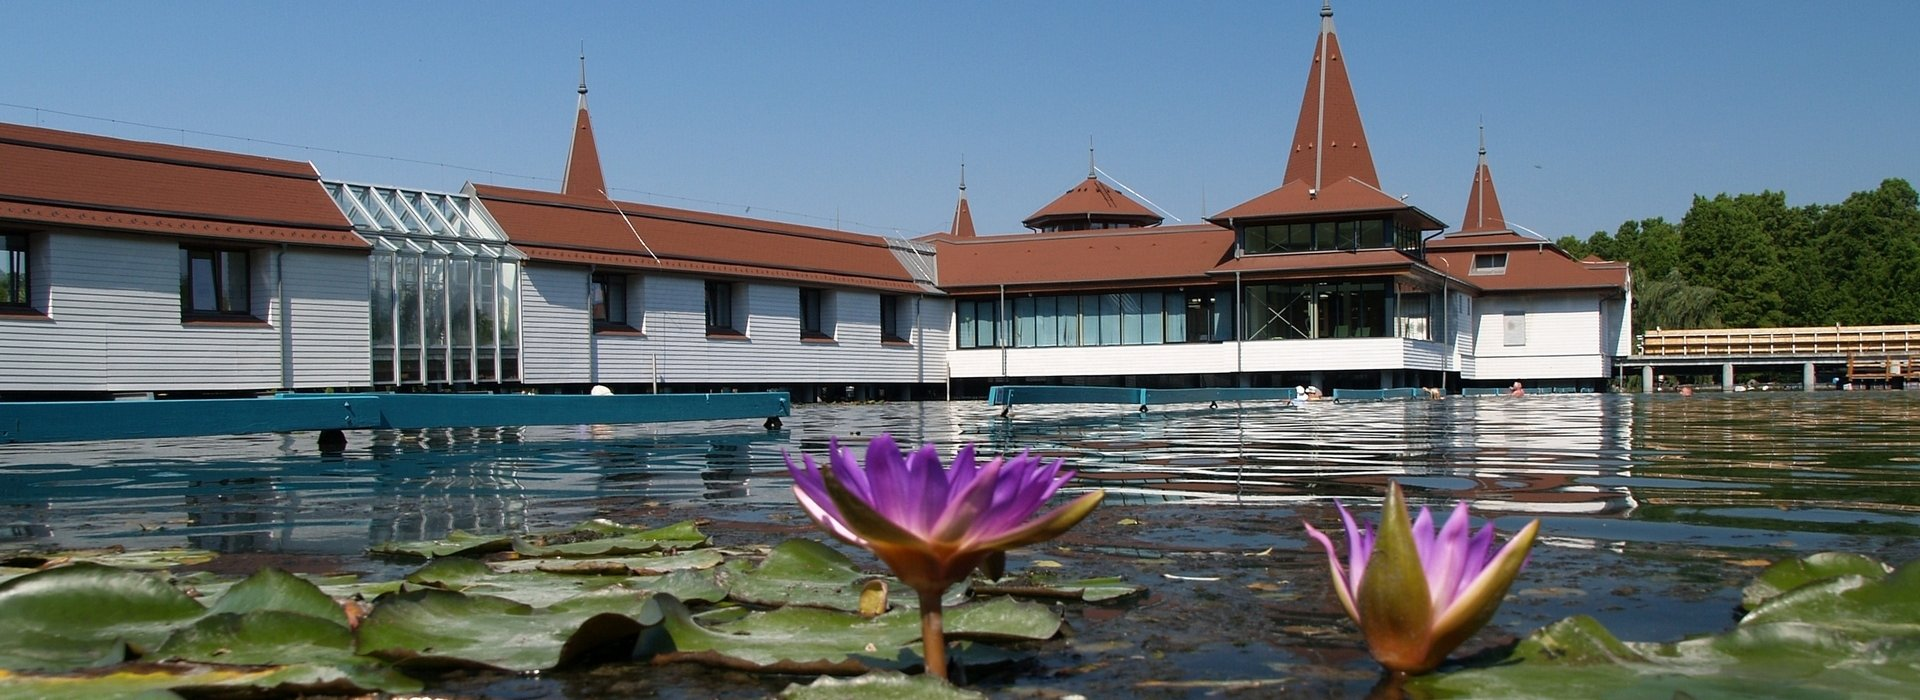 Thermal baths and health resort